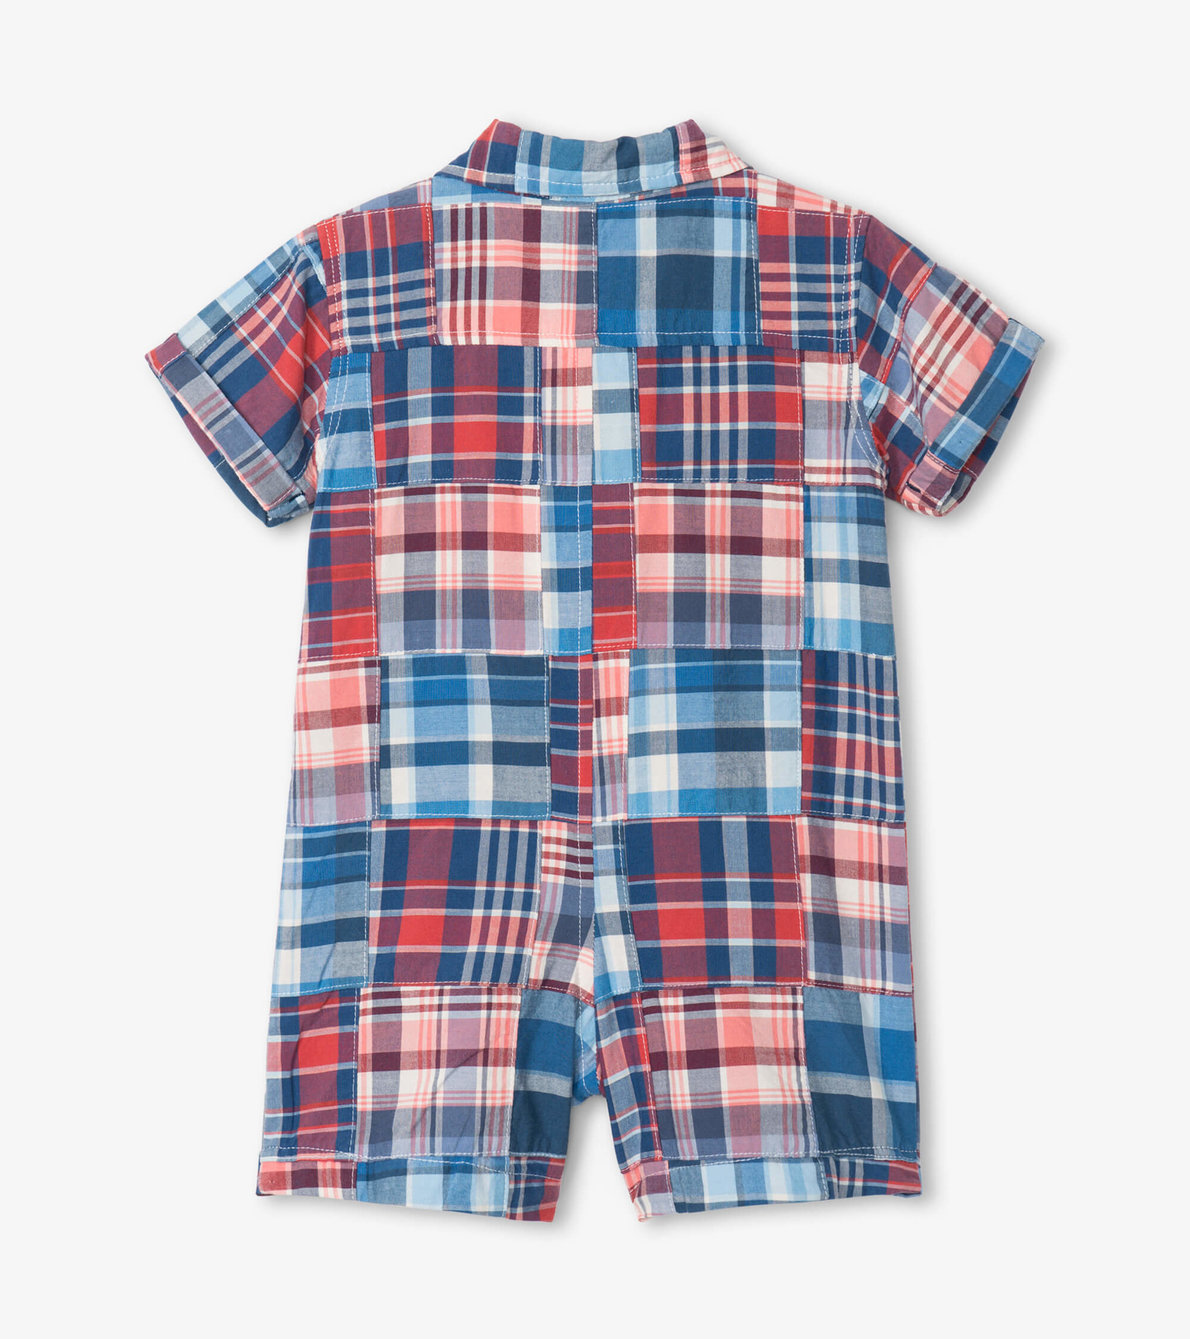 View larger image of Madras Plaid Baby Woven Romper